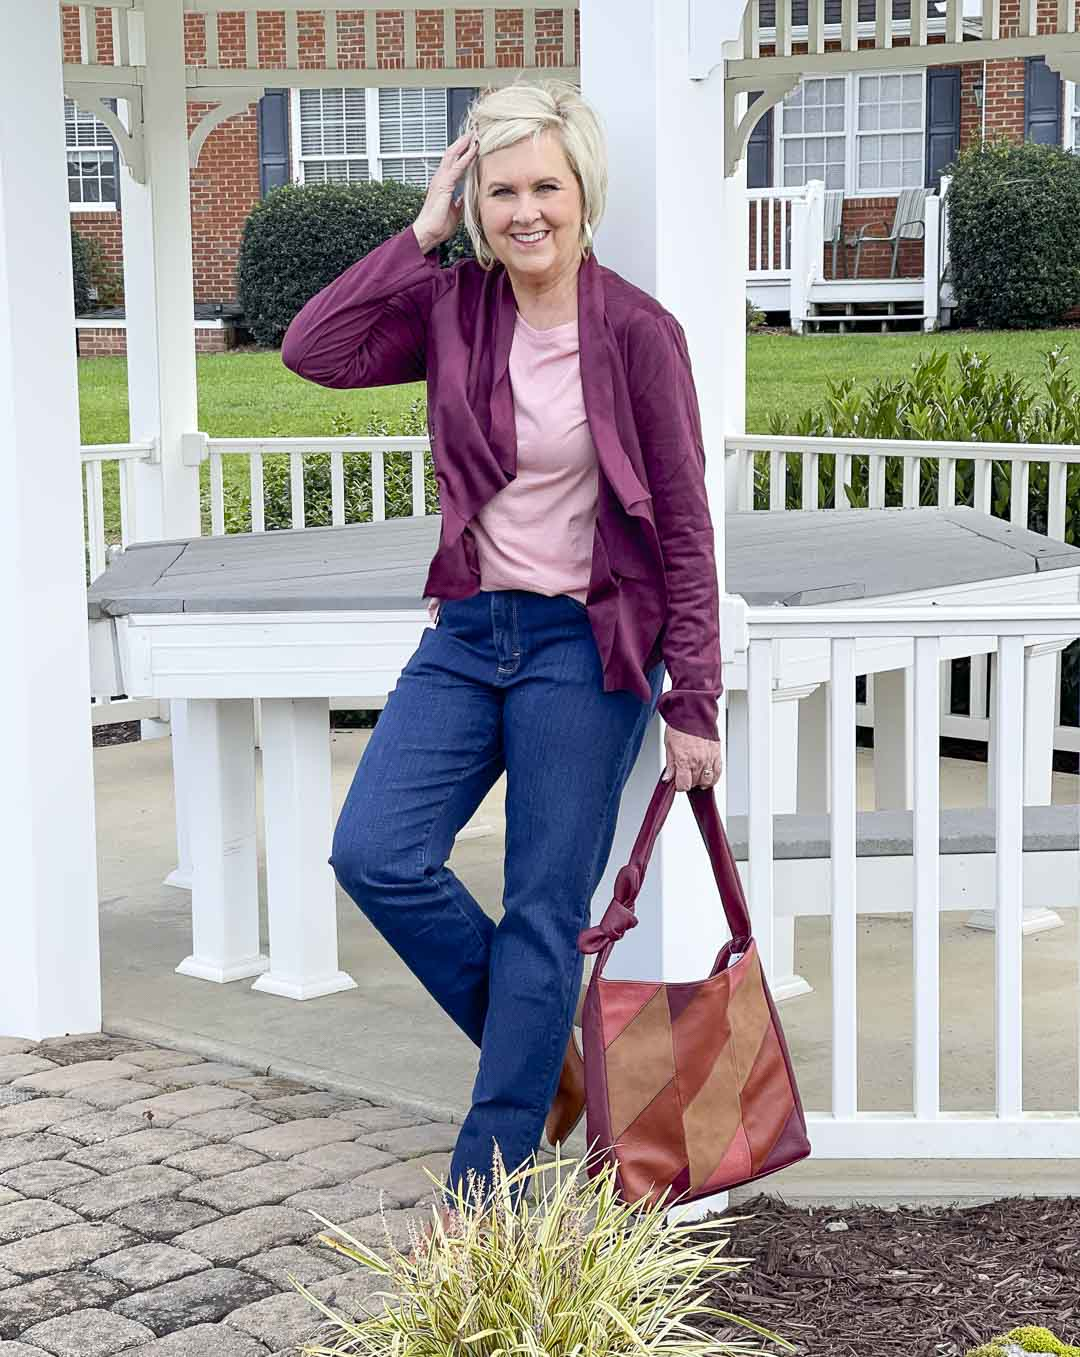 Over 40 Fashion Blogger, Tania Stephens, is showing her recent Walmart haul including this plum jacket, pink tee, bootcut jeans, and patchwork bag